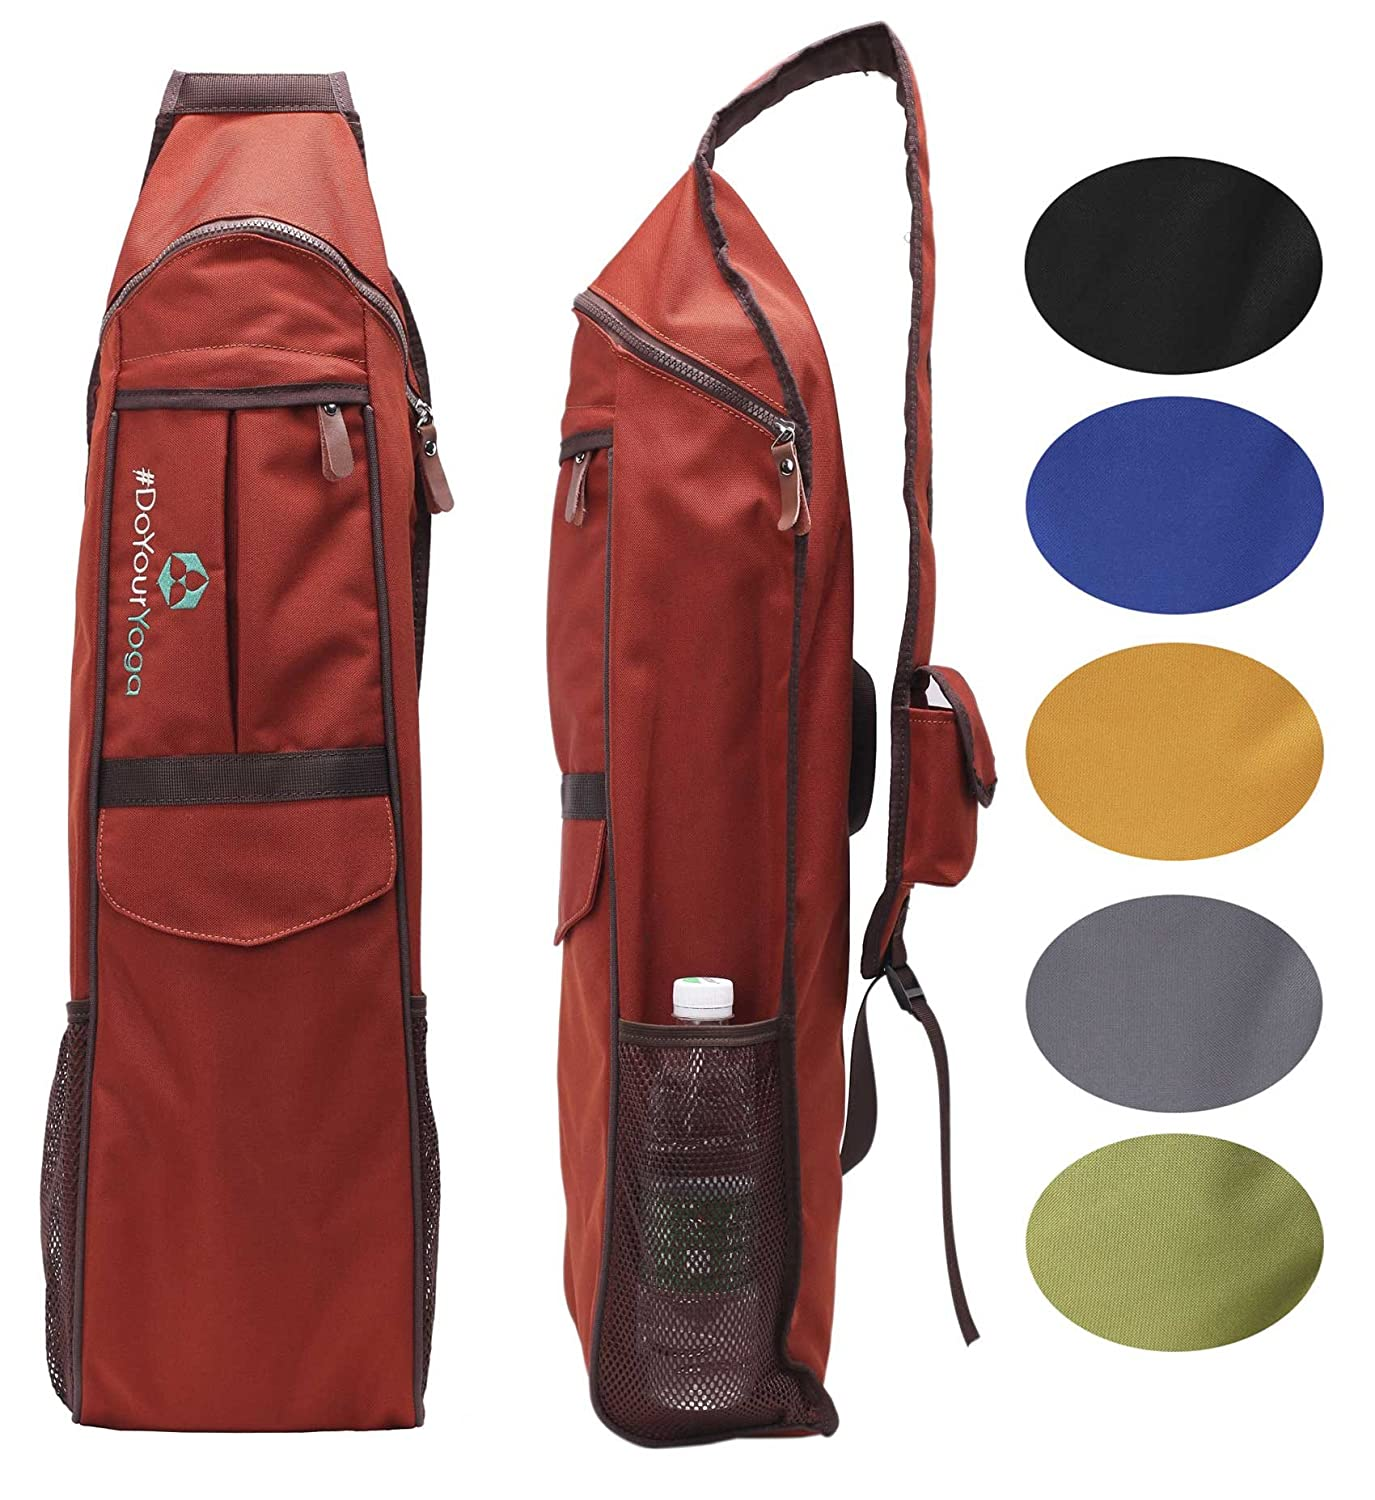 #DoYourYoga Yoga Mat Bag »Indra« from made of waterresistant materials - carry kit/shoulder/backpack (multifunctional storage like towel, wallet .) pilates fitness & aerobics mats #DoYourSports